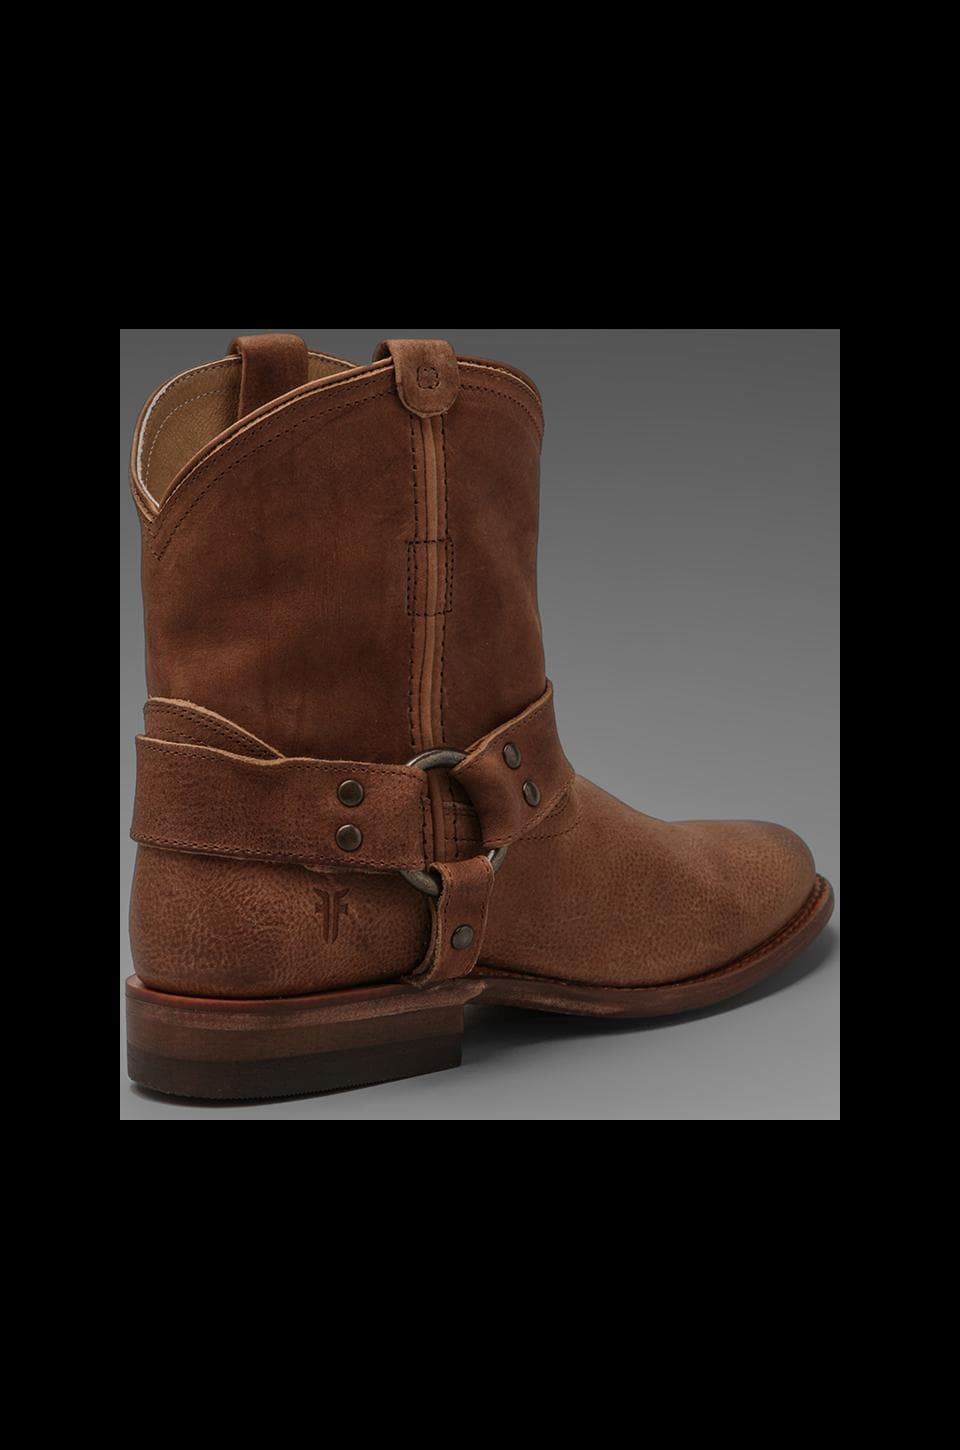 Frye Wyatt Harness Short Boot in Sand